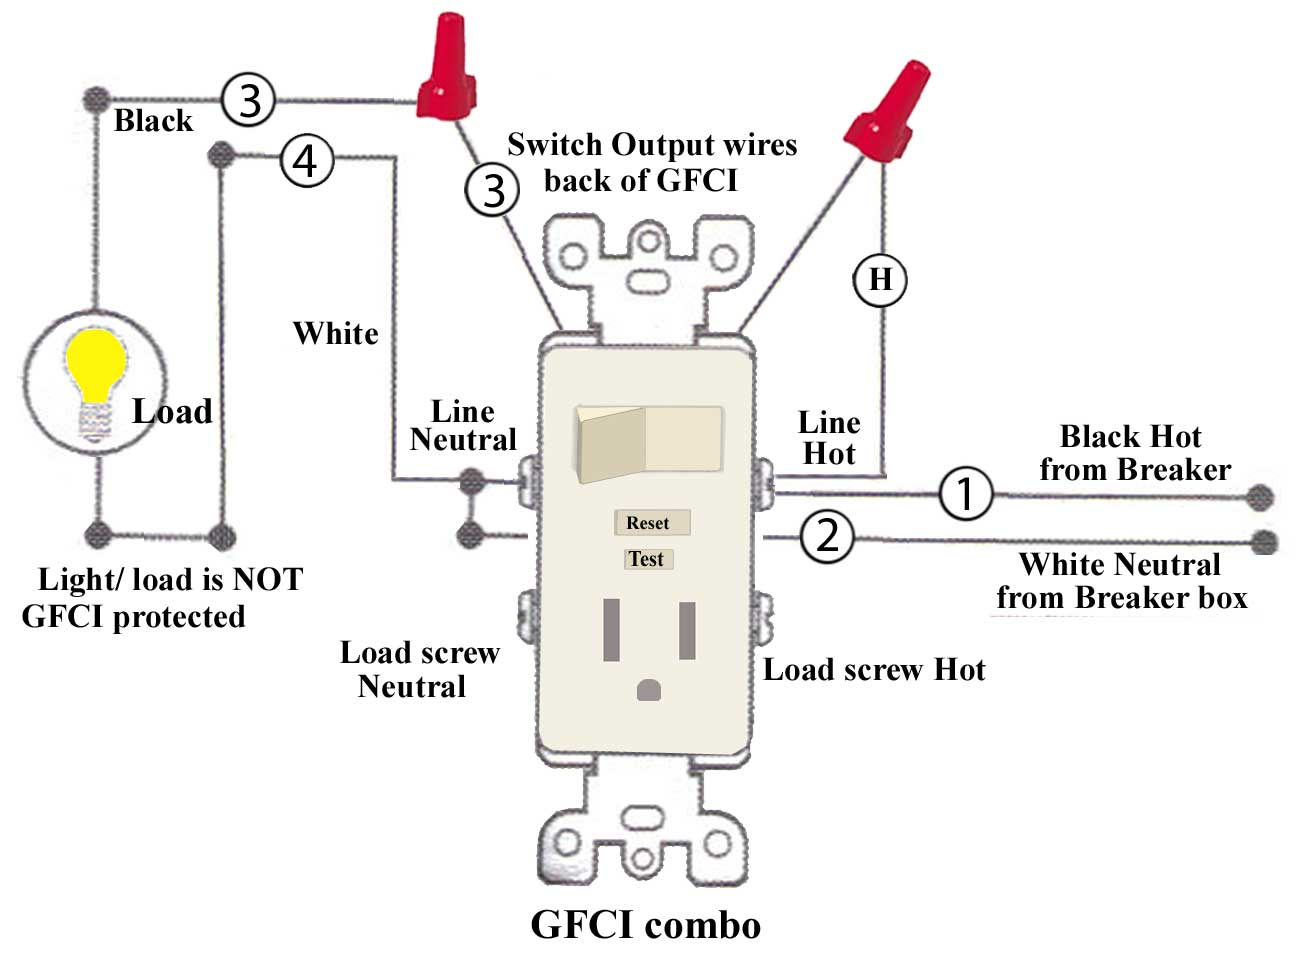 Single Pole Switch Gfi Wiring Diagram Great Installation Of Combination 3 Way How To Install And Troubleshoot Gfci Rh Waterheatertimer Org Double Light Home